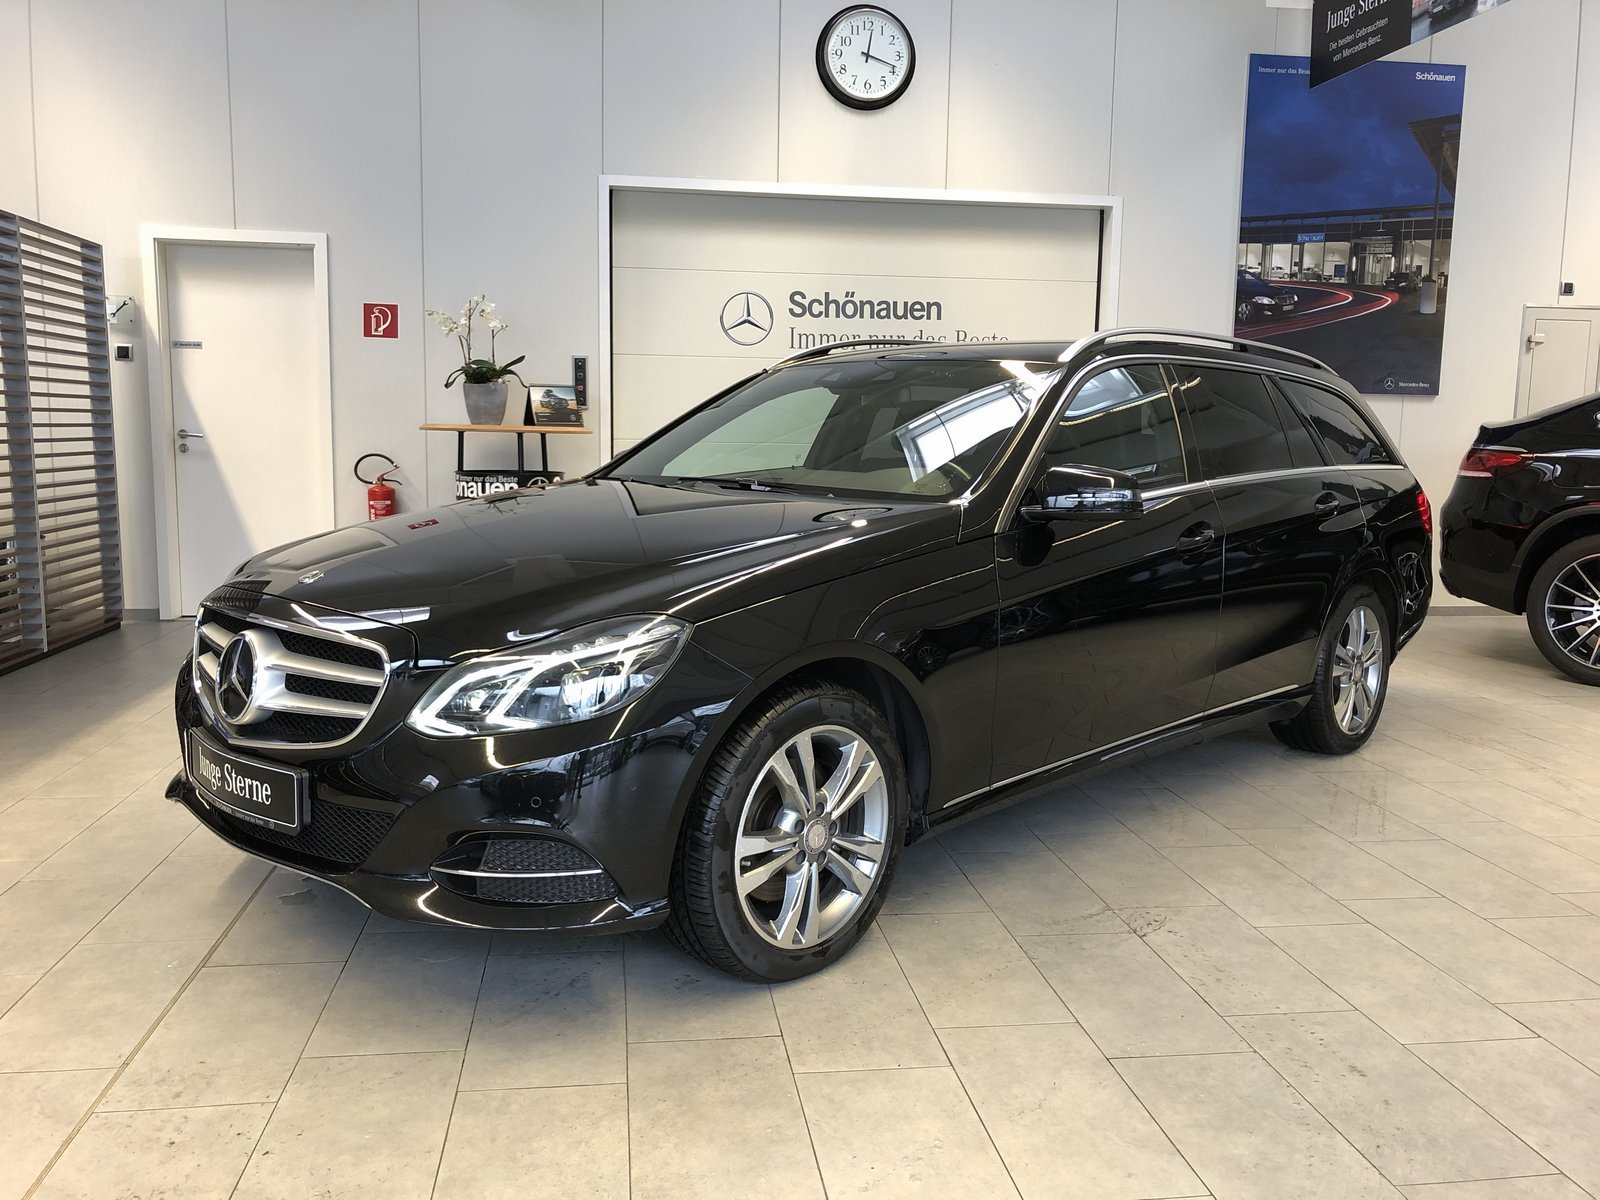 Mercedes-Benz E 350 4M T BlueTEC COMAND+DISTR+KAMERA+LED+TOTW, Jahr 2014, Diesel